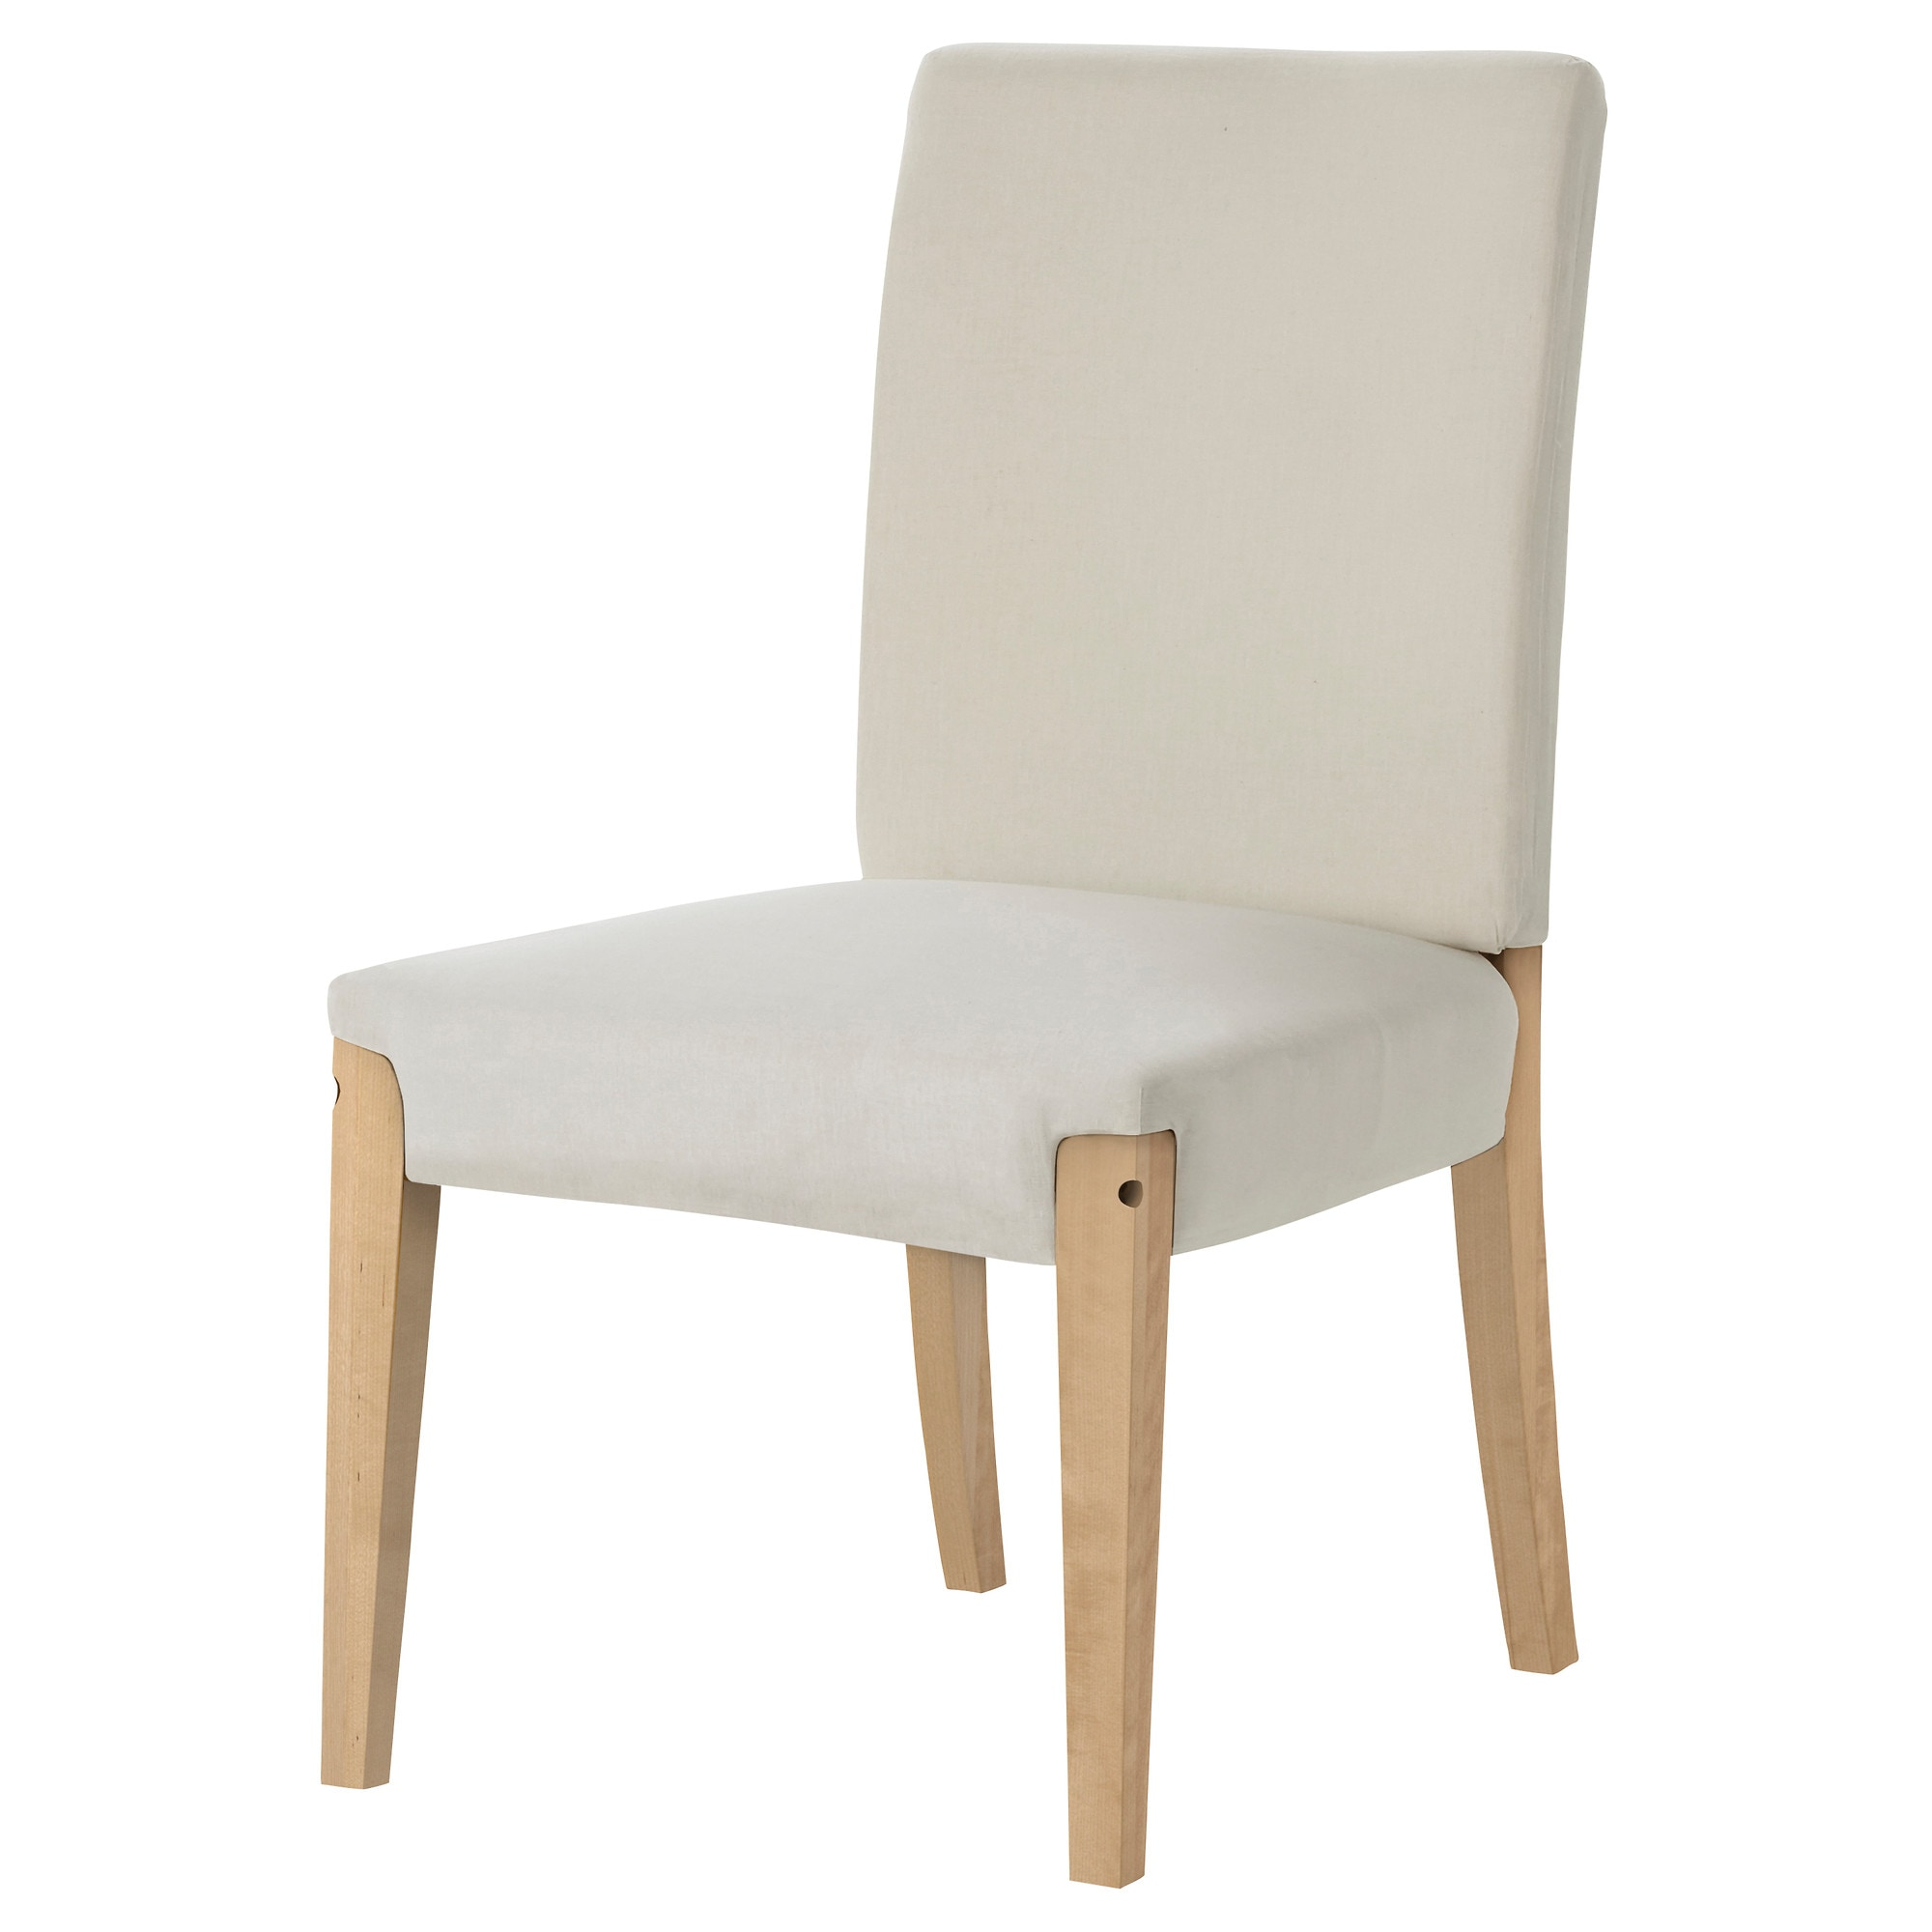 Dining chairs - Dining chairs & Upholstered chairs - IKEA